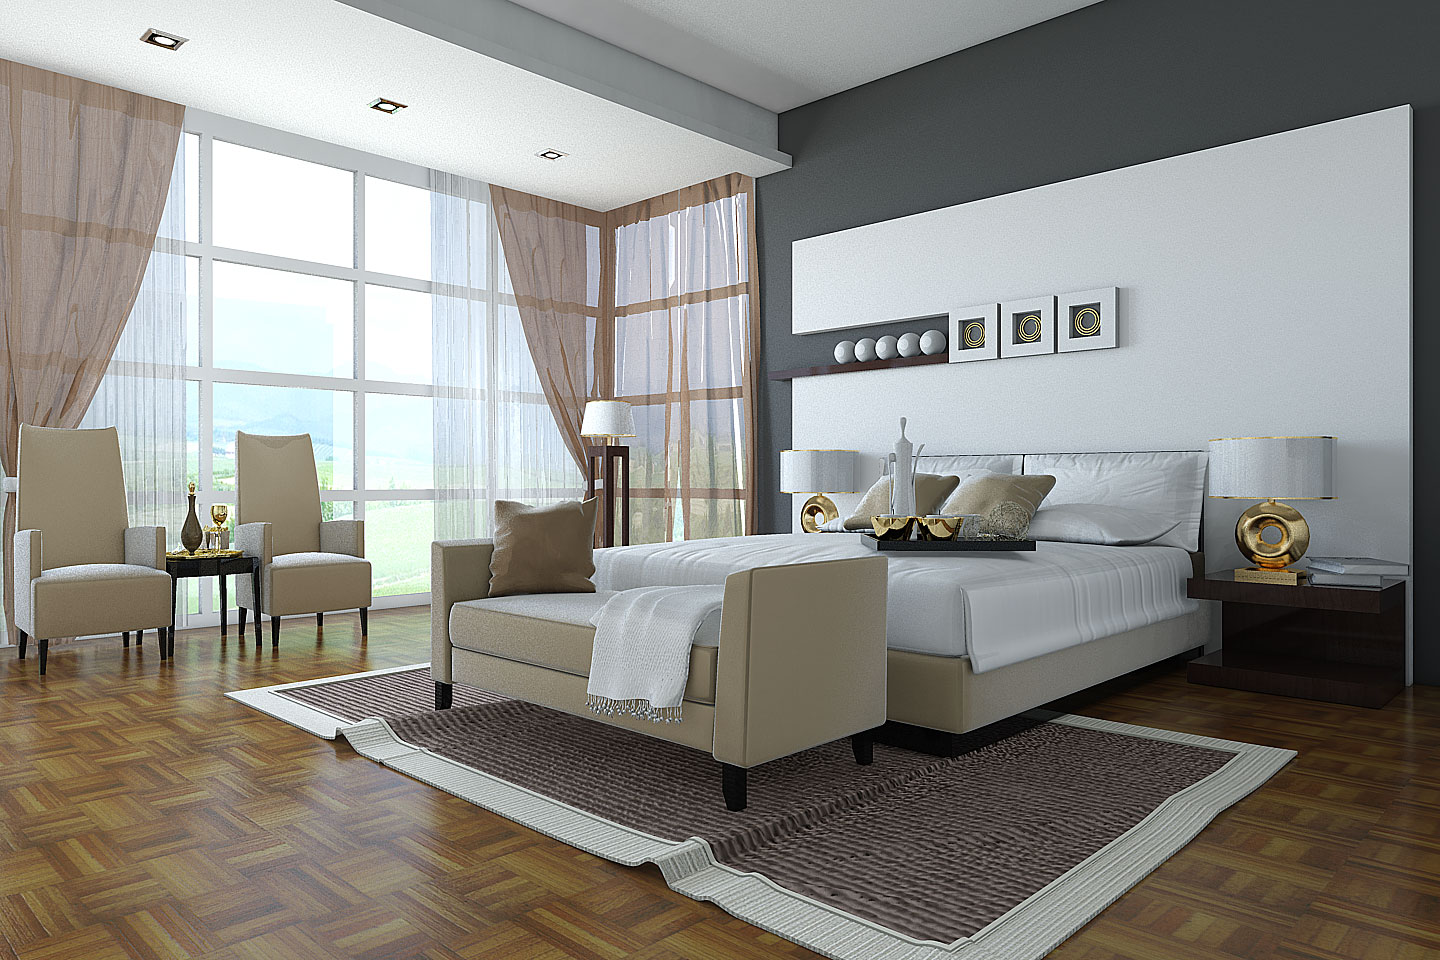 classic bedroom design - Design Bedroom